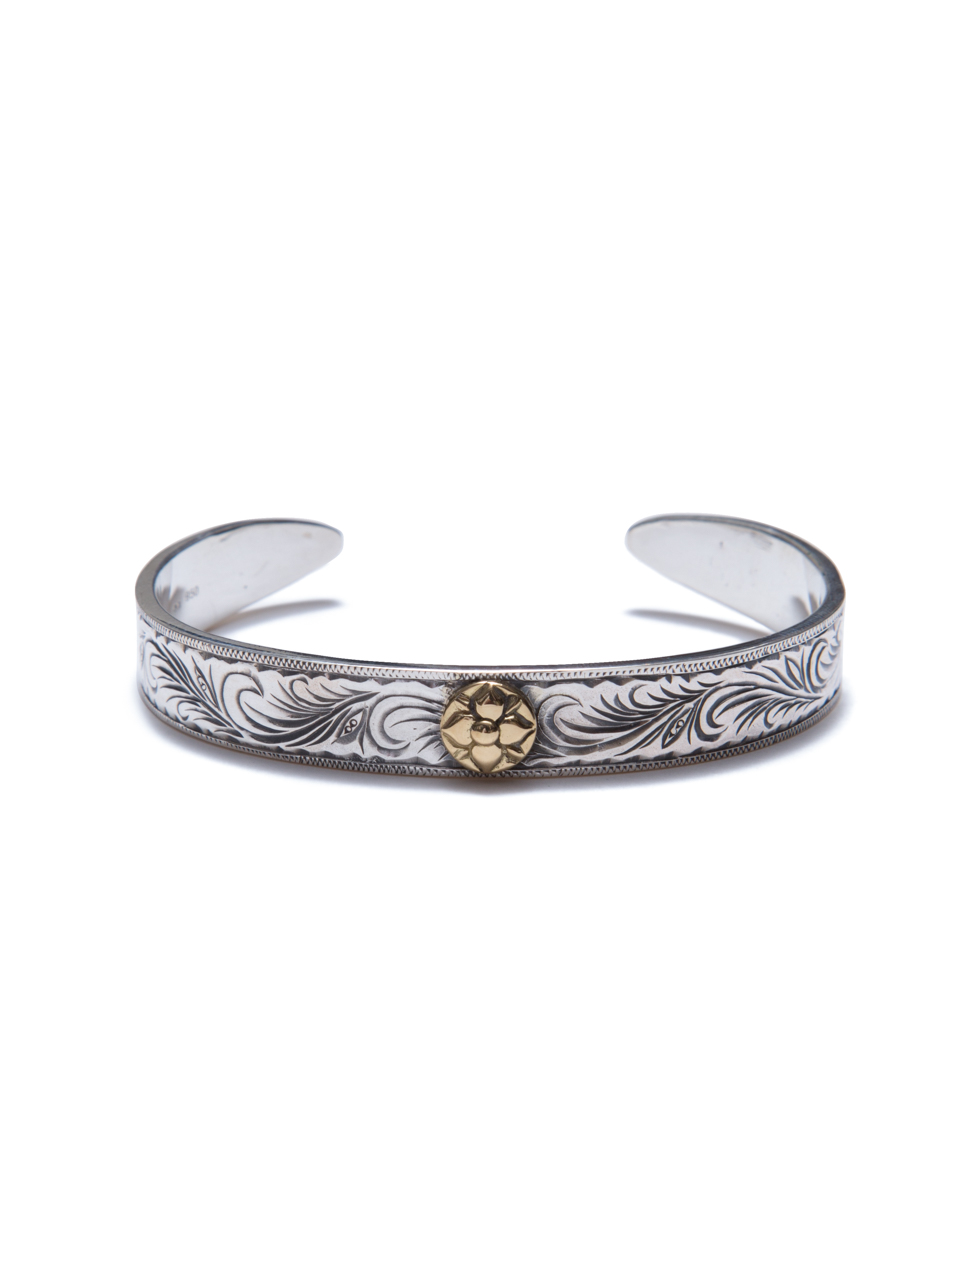 ANTIDOTE BUYERS CLUB Engraved Rose Bangle